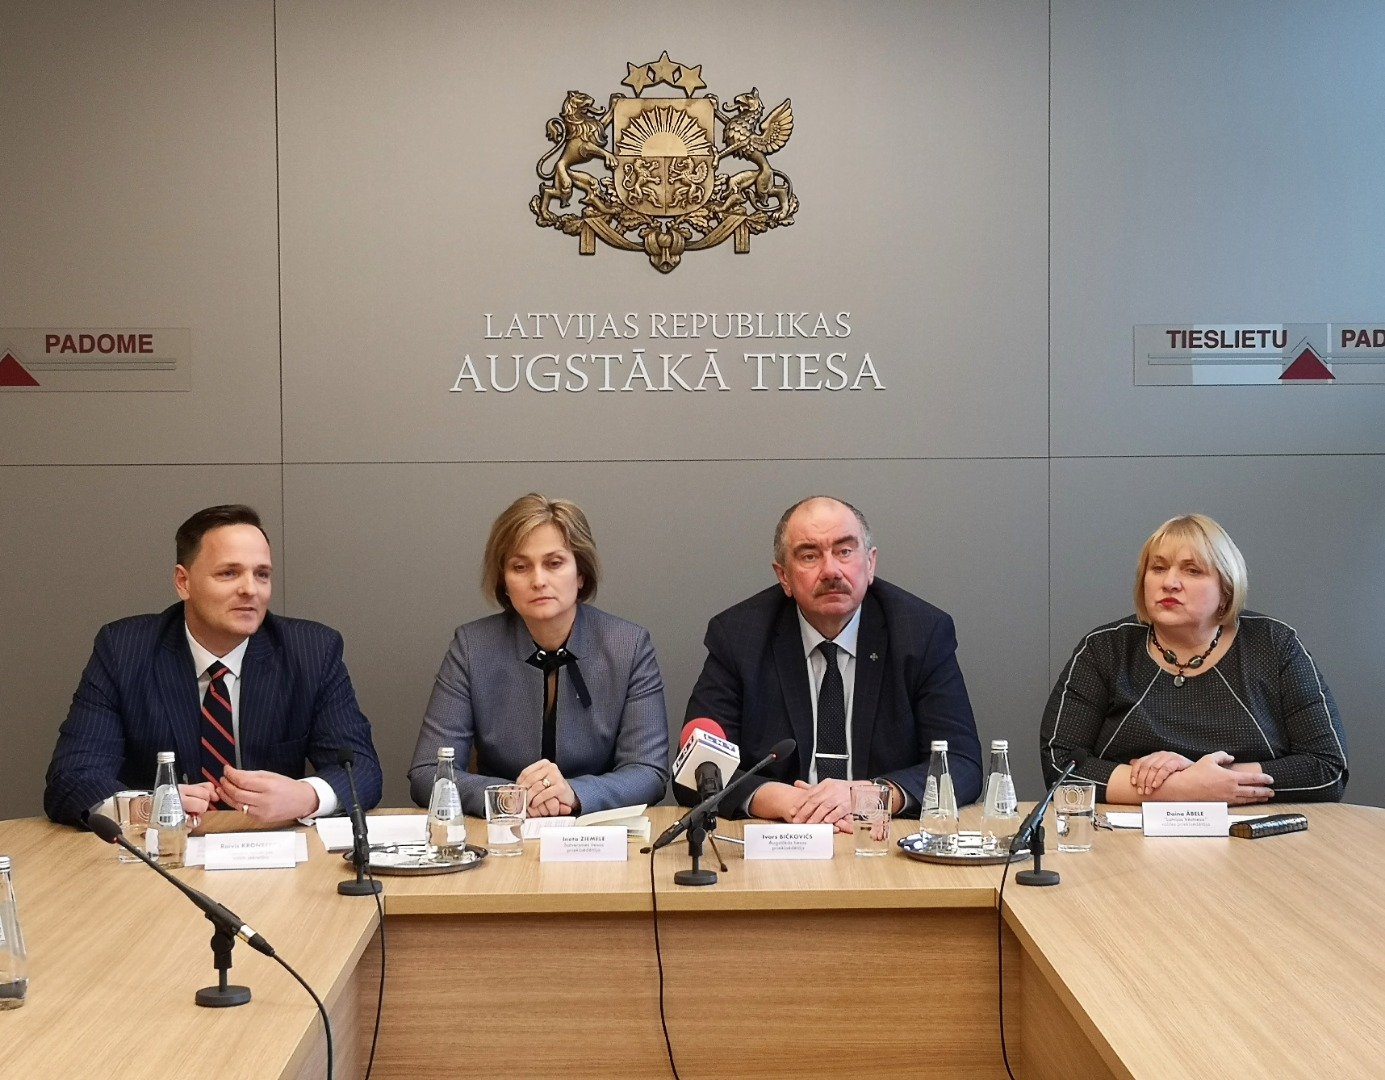 """13.03.2019. The new function of website Likumi.lv – linking of provisions of the law with the case-law findings of the Supreme Court and of the Constitutional Court – is introduced at the press conference by the State Secretary of the Ministry of Justice Raivis Kronbergs, the President of the Constitutional Court Ineta Ziemele, the Chief Justice of the Supreme Court Ivars Bickovics and the Chair of the Board VSIA """"Latvijas Vestnesis"""" Daina Abele."""